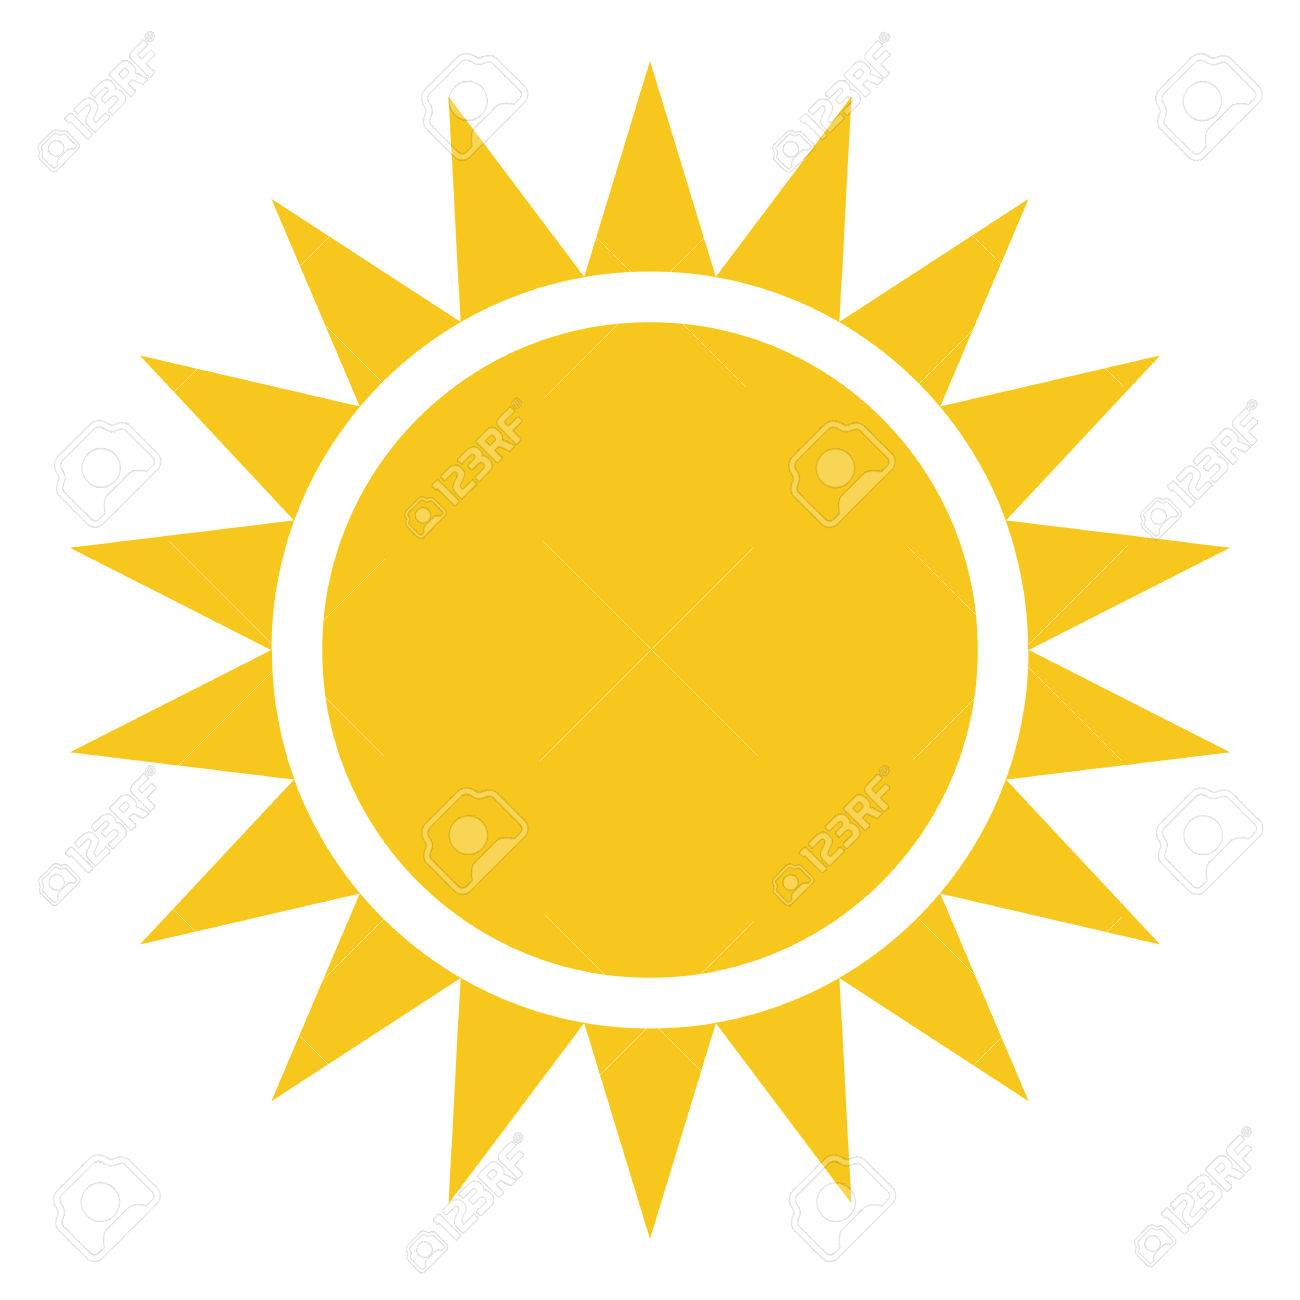 yellow gold sun icon isolated on background modern flat pictogram rh 123rf com Free Vector Backgrounds Free Sun Graphics